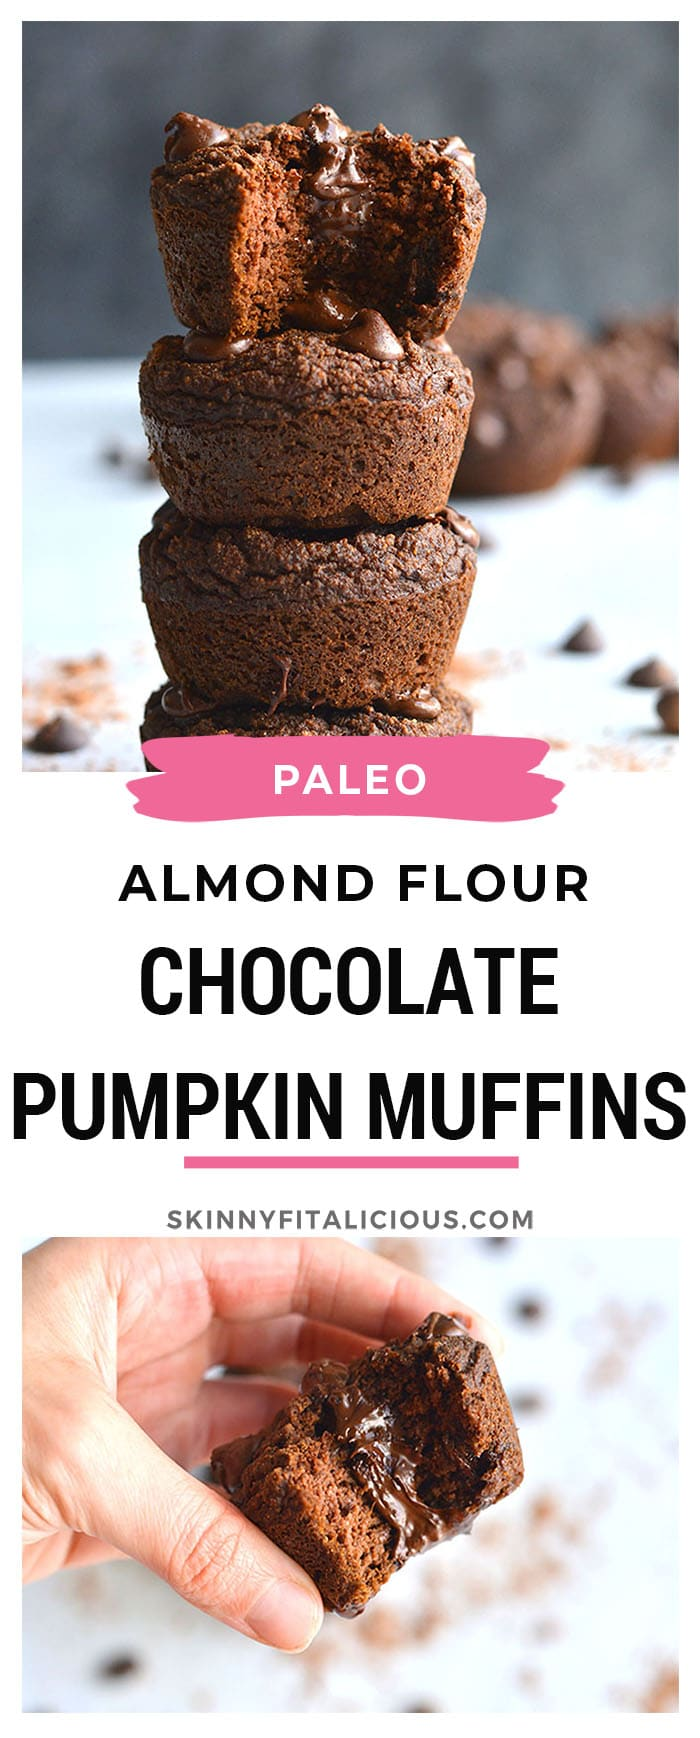 Chocolate Pumpkin Almond Flour Muffins! These muffins are Paleo, dairy-free and lightlysweetenedwith maple syrup. A great gluten free snack anytime of day!